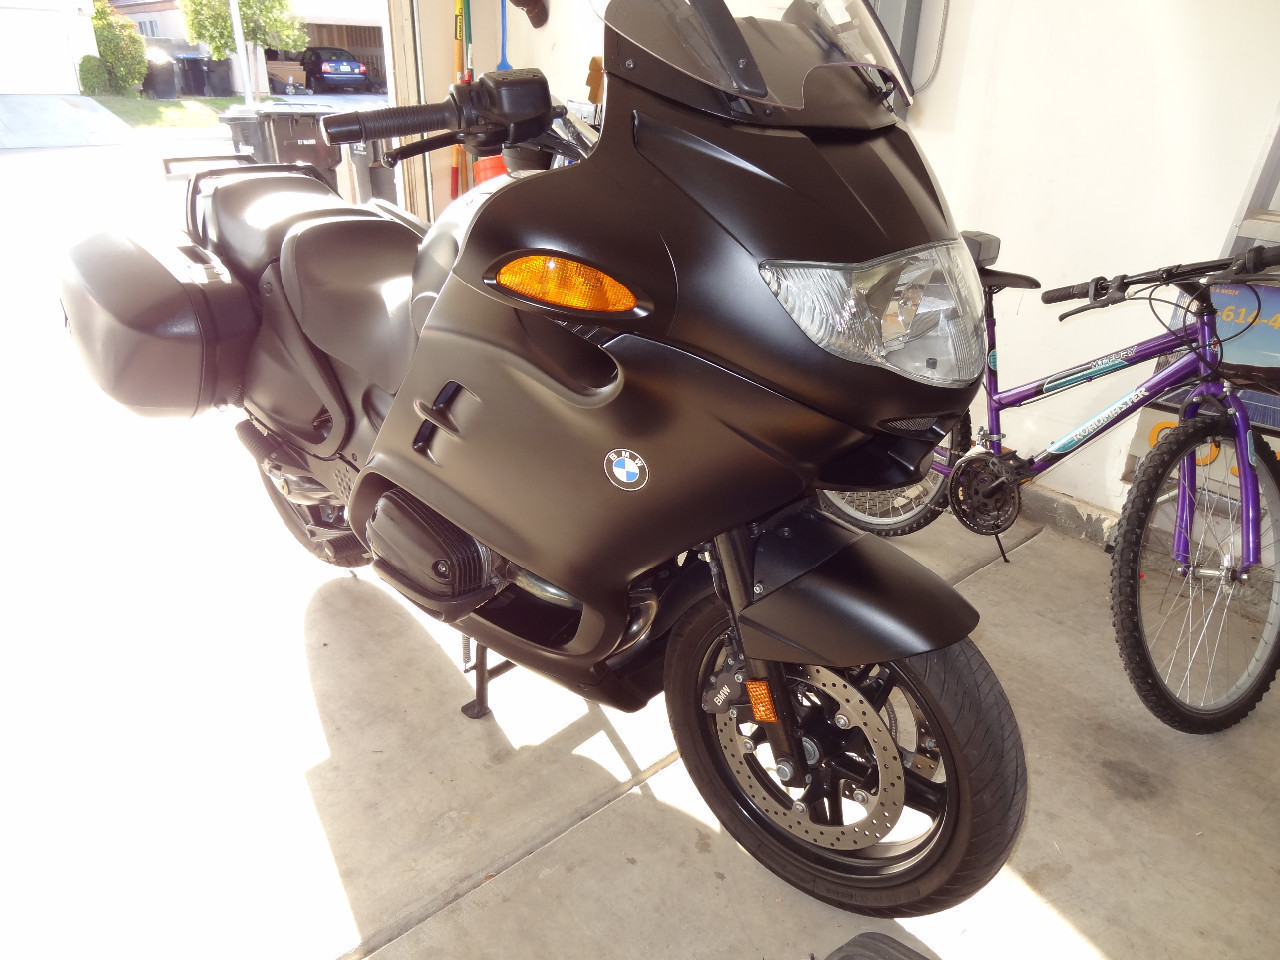 2002 BMW R 1150 RT, motorcycle listing